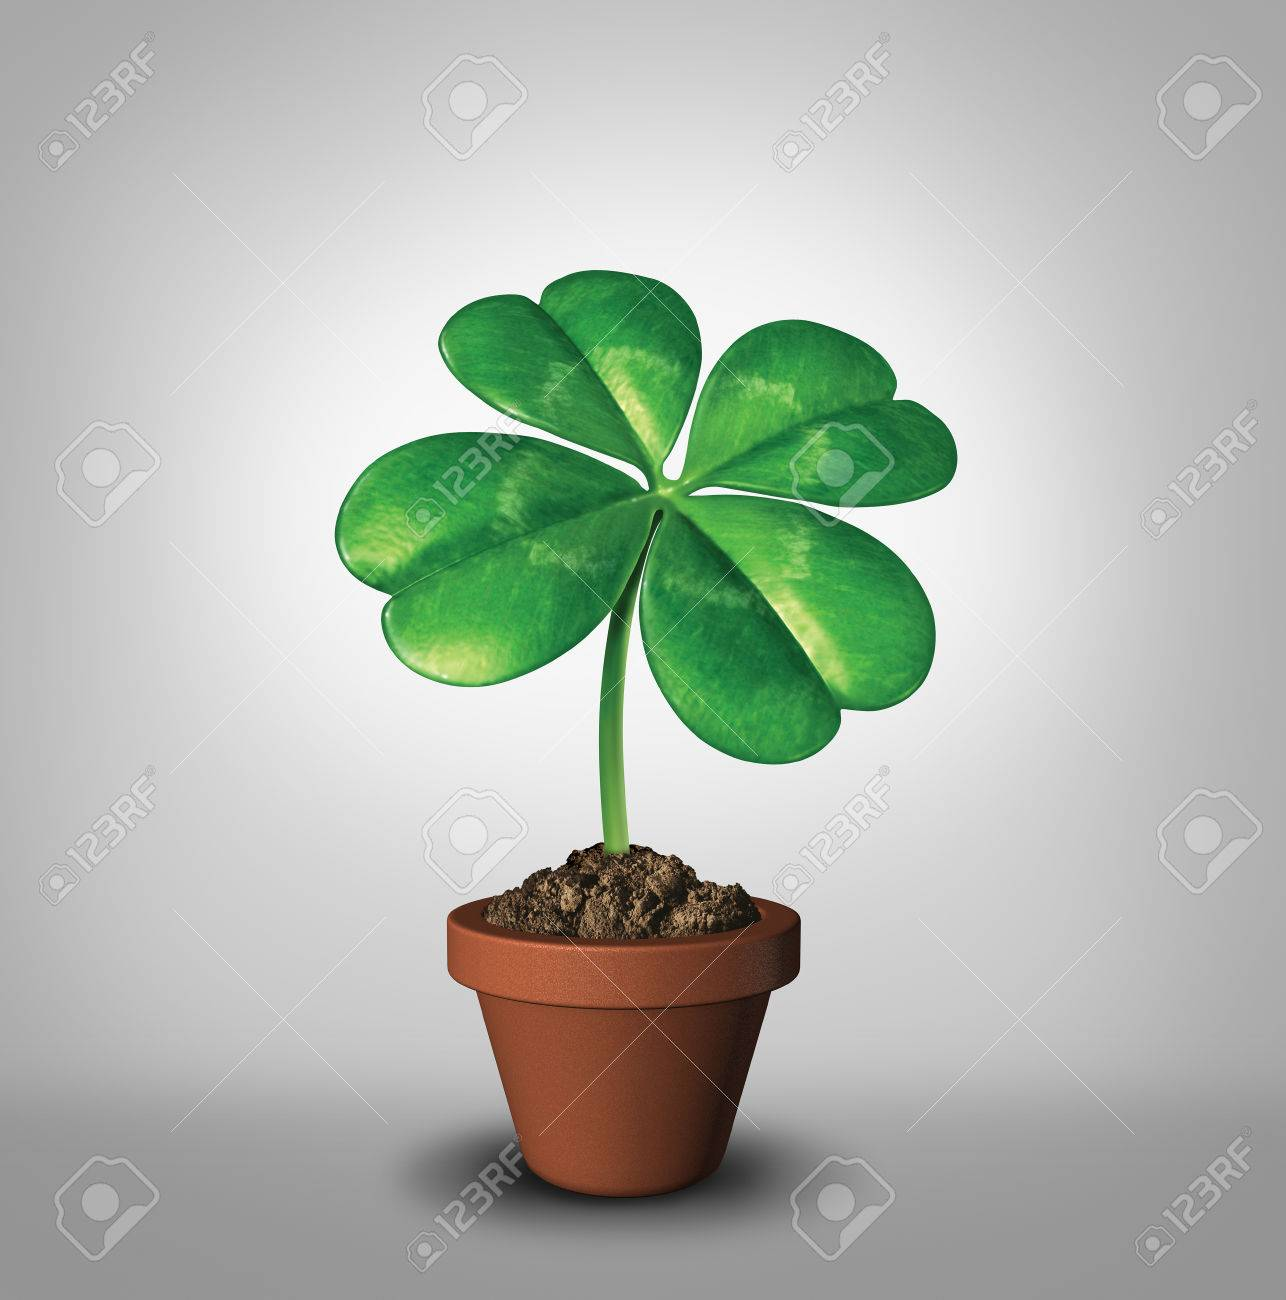 Growing Your Luck As A Four Leaf Clover Plant In A Flower Pot